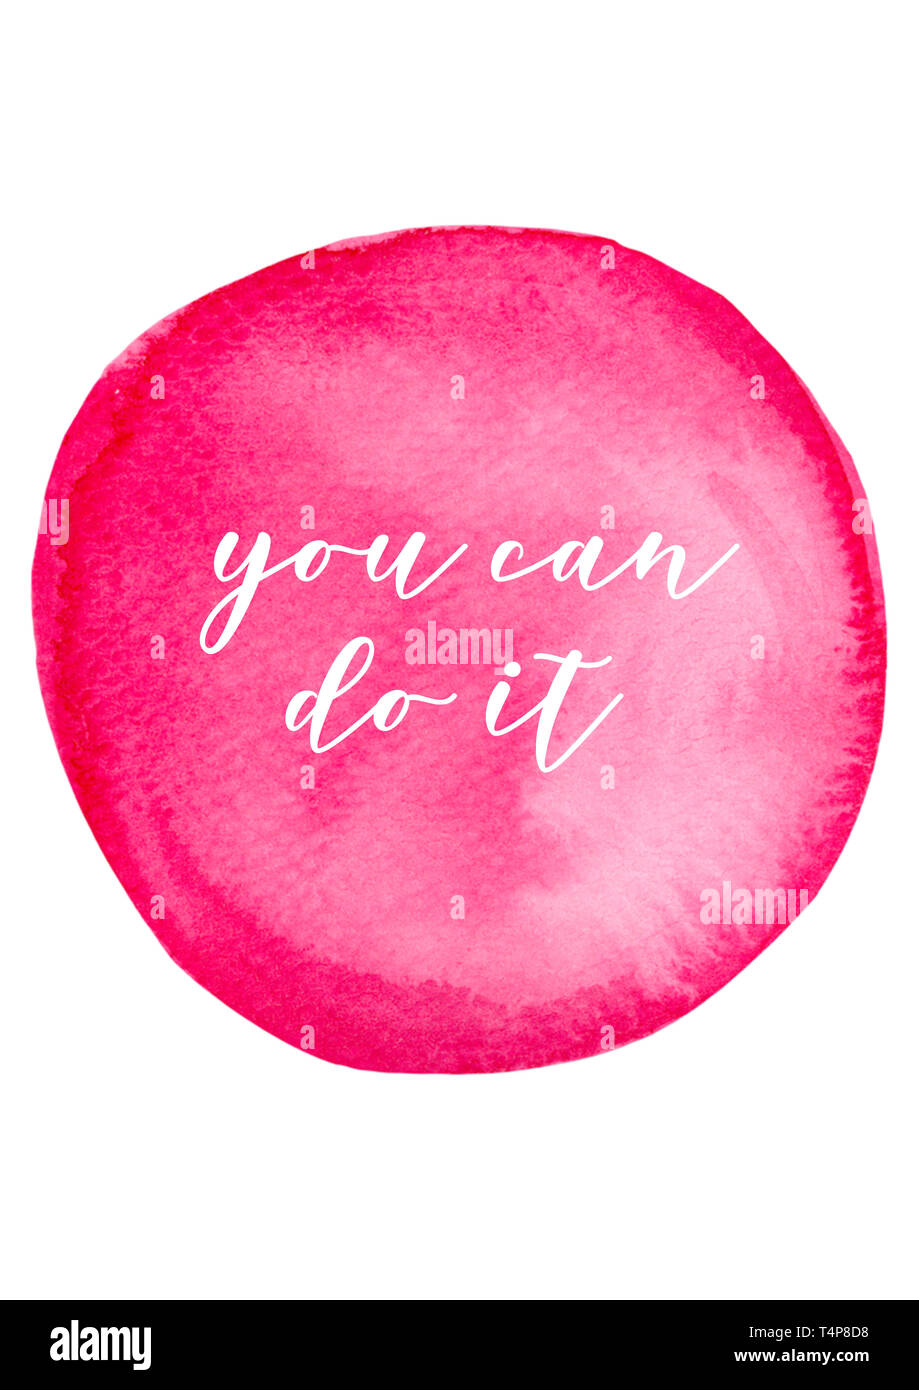 You cab do it. Motivational quote with pink watercolor background. - Stock Image